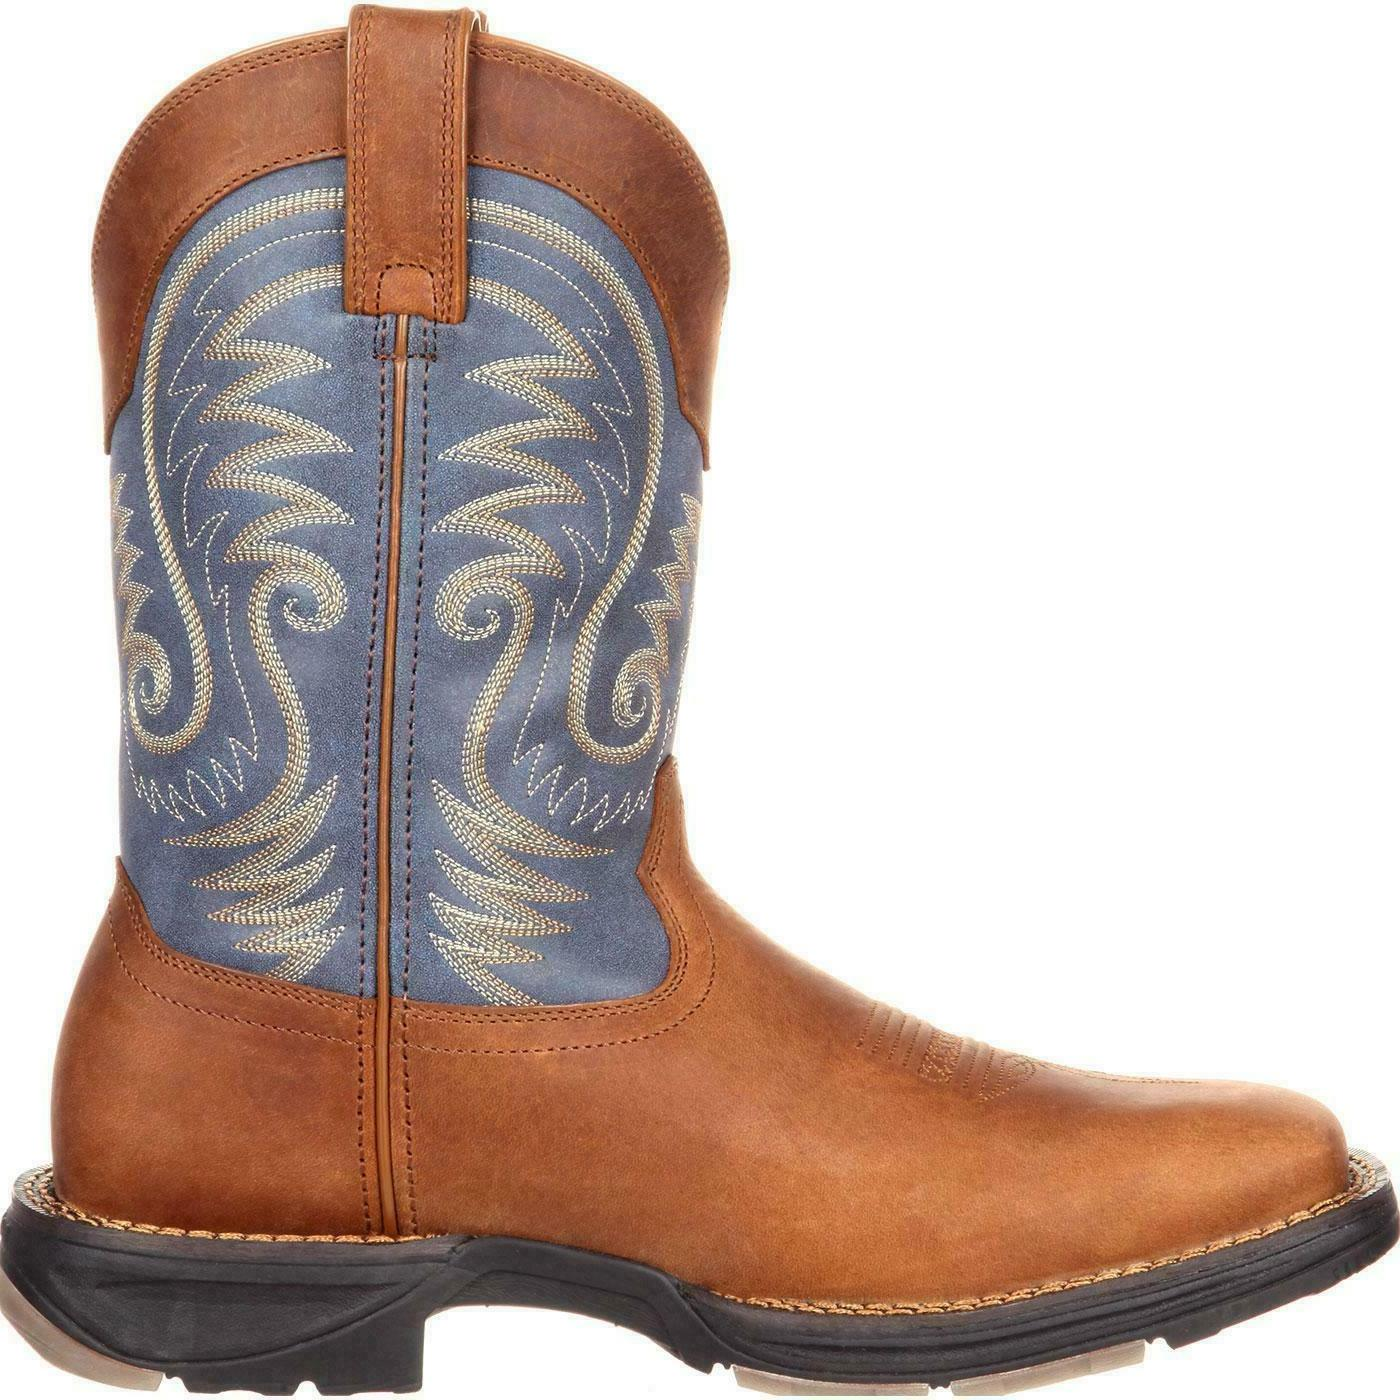 "DURANGO ULTRALITE 11"" WESTERN MEN'S BOOTS DDB0108 ALL - NEW"